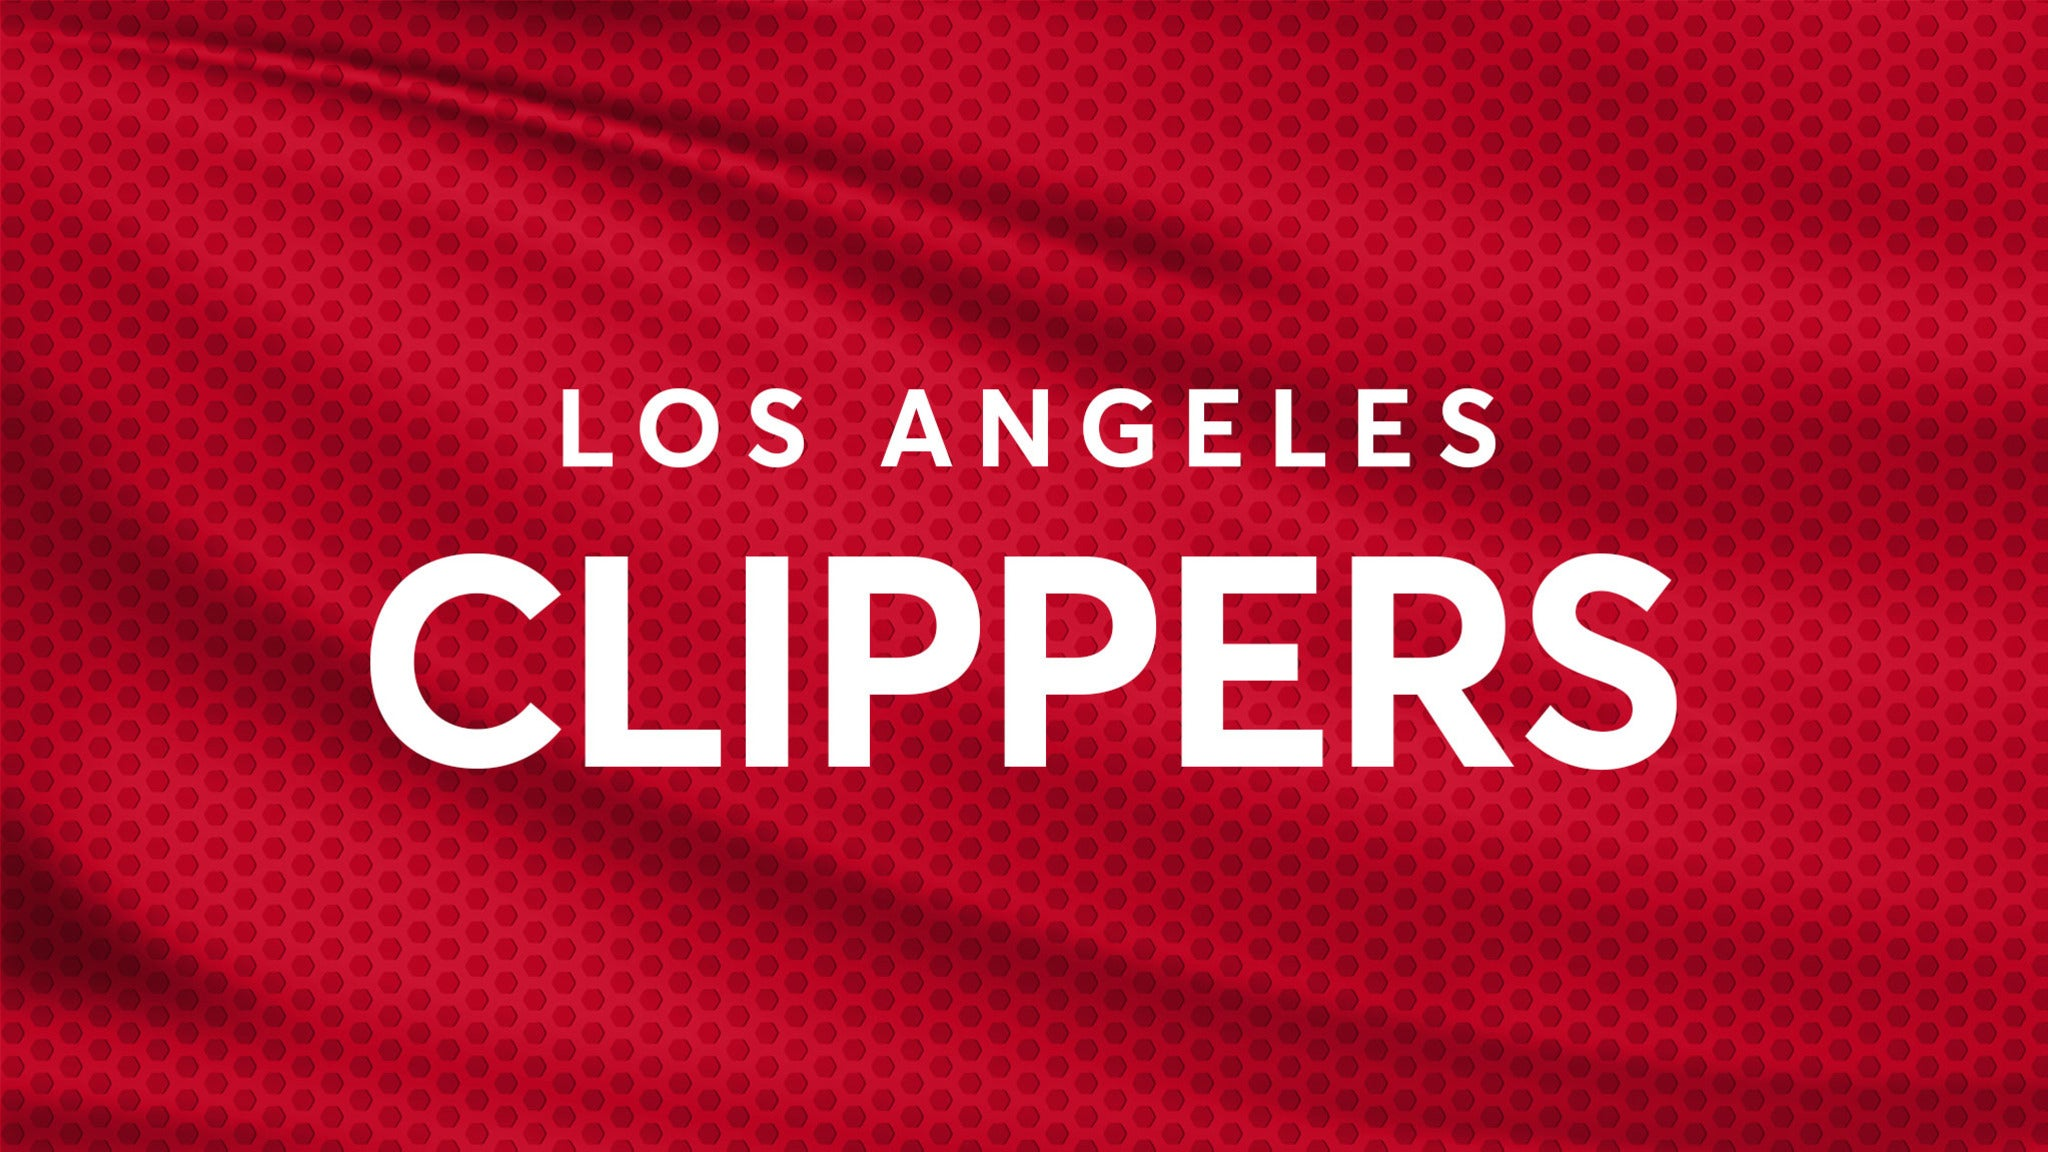 West Conf Finals: Suns at Clippers Rd 3 Hm Gm 2